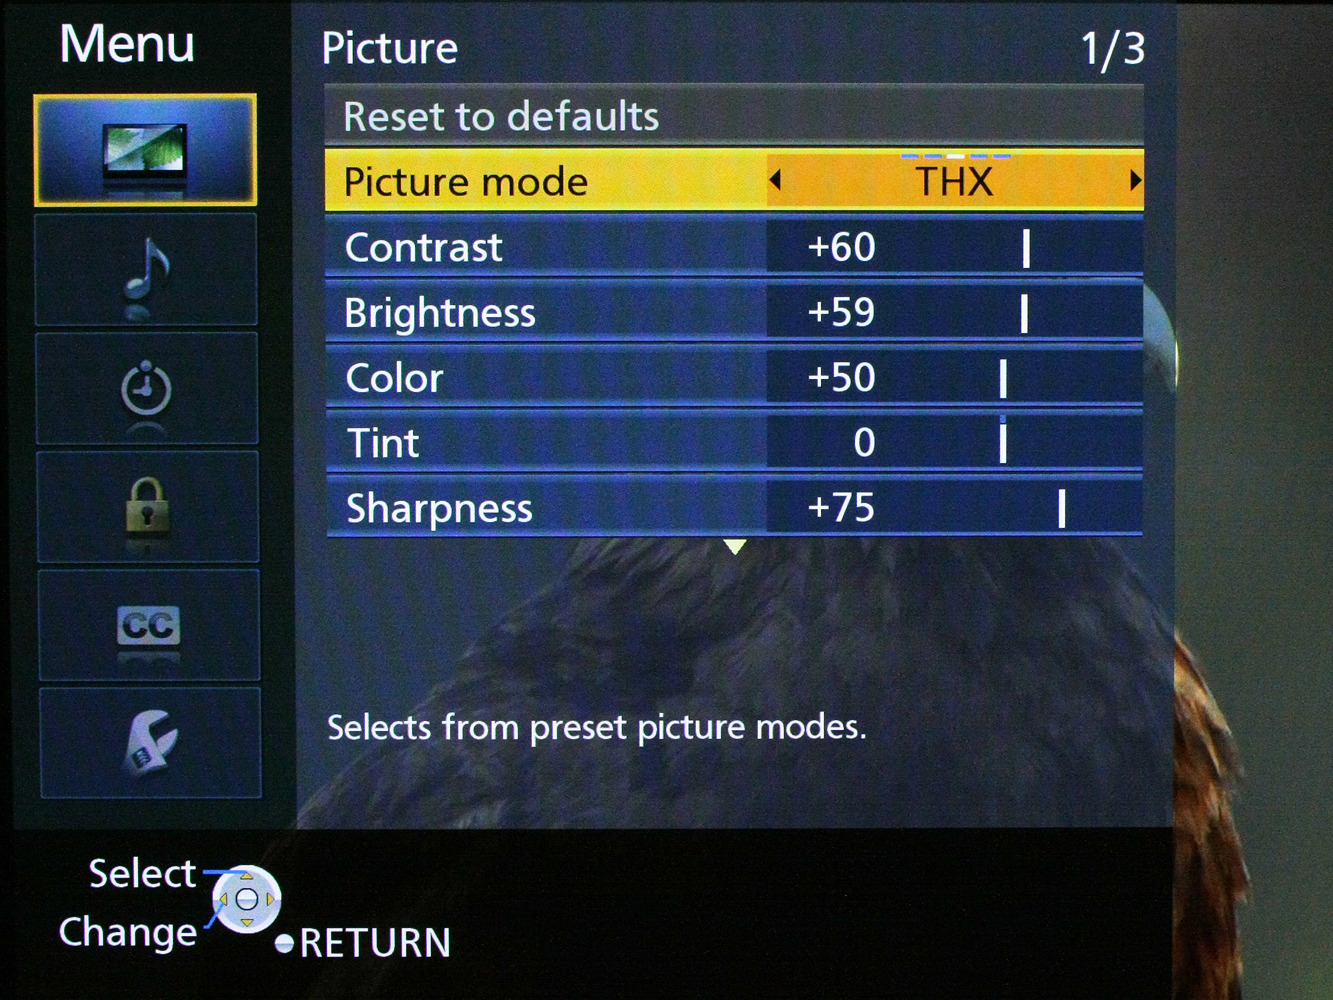 Picture modes